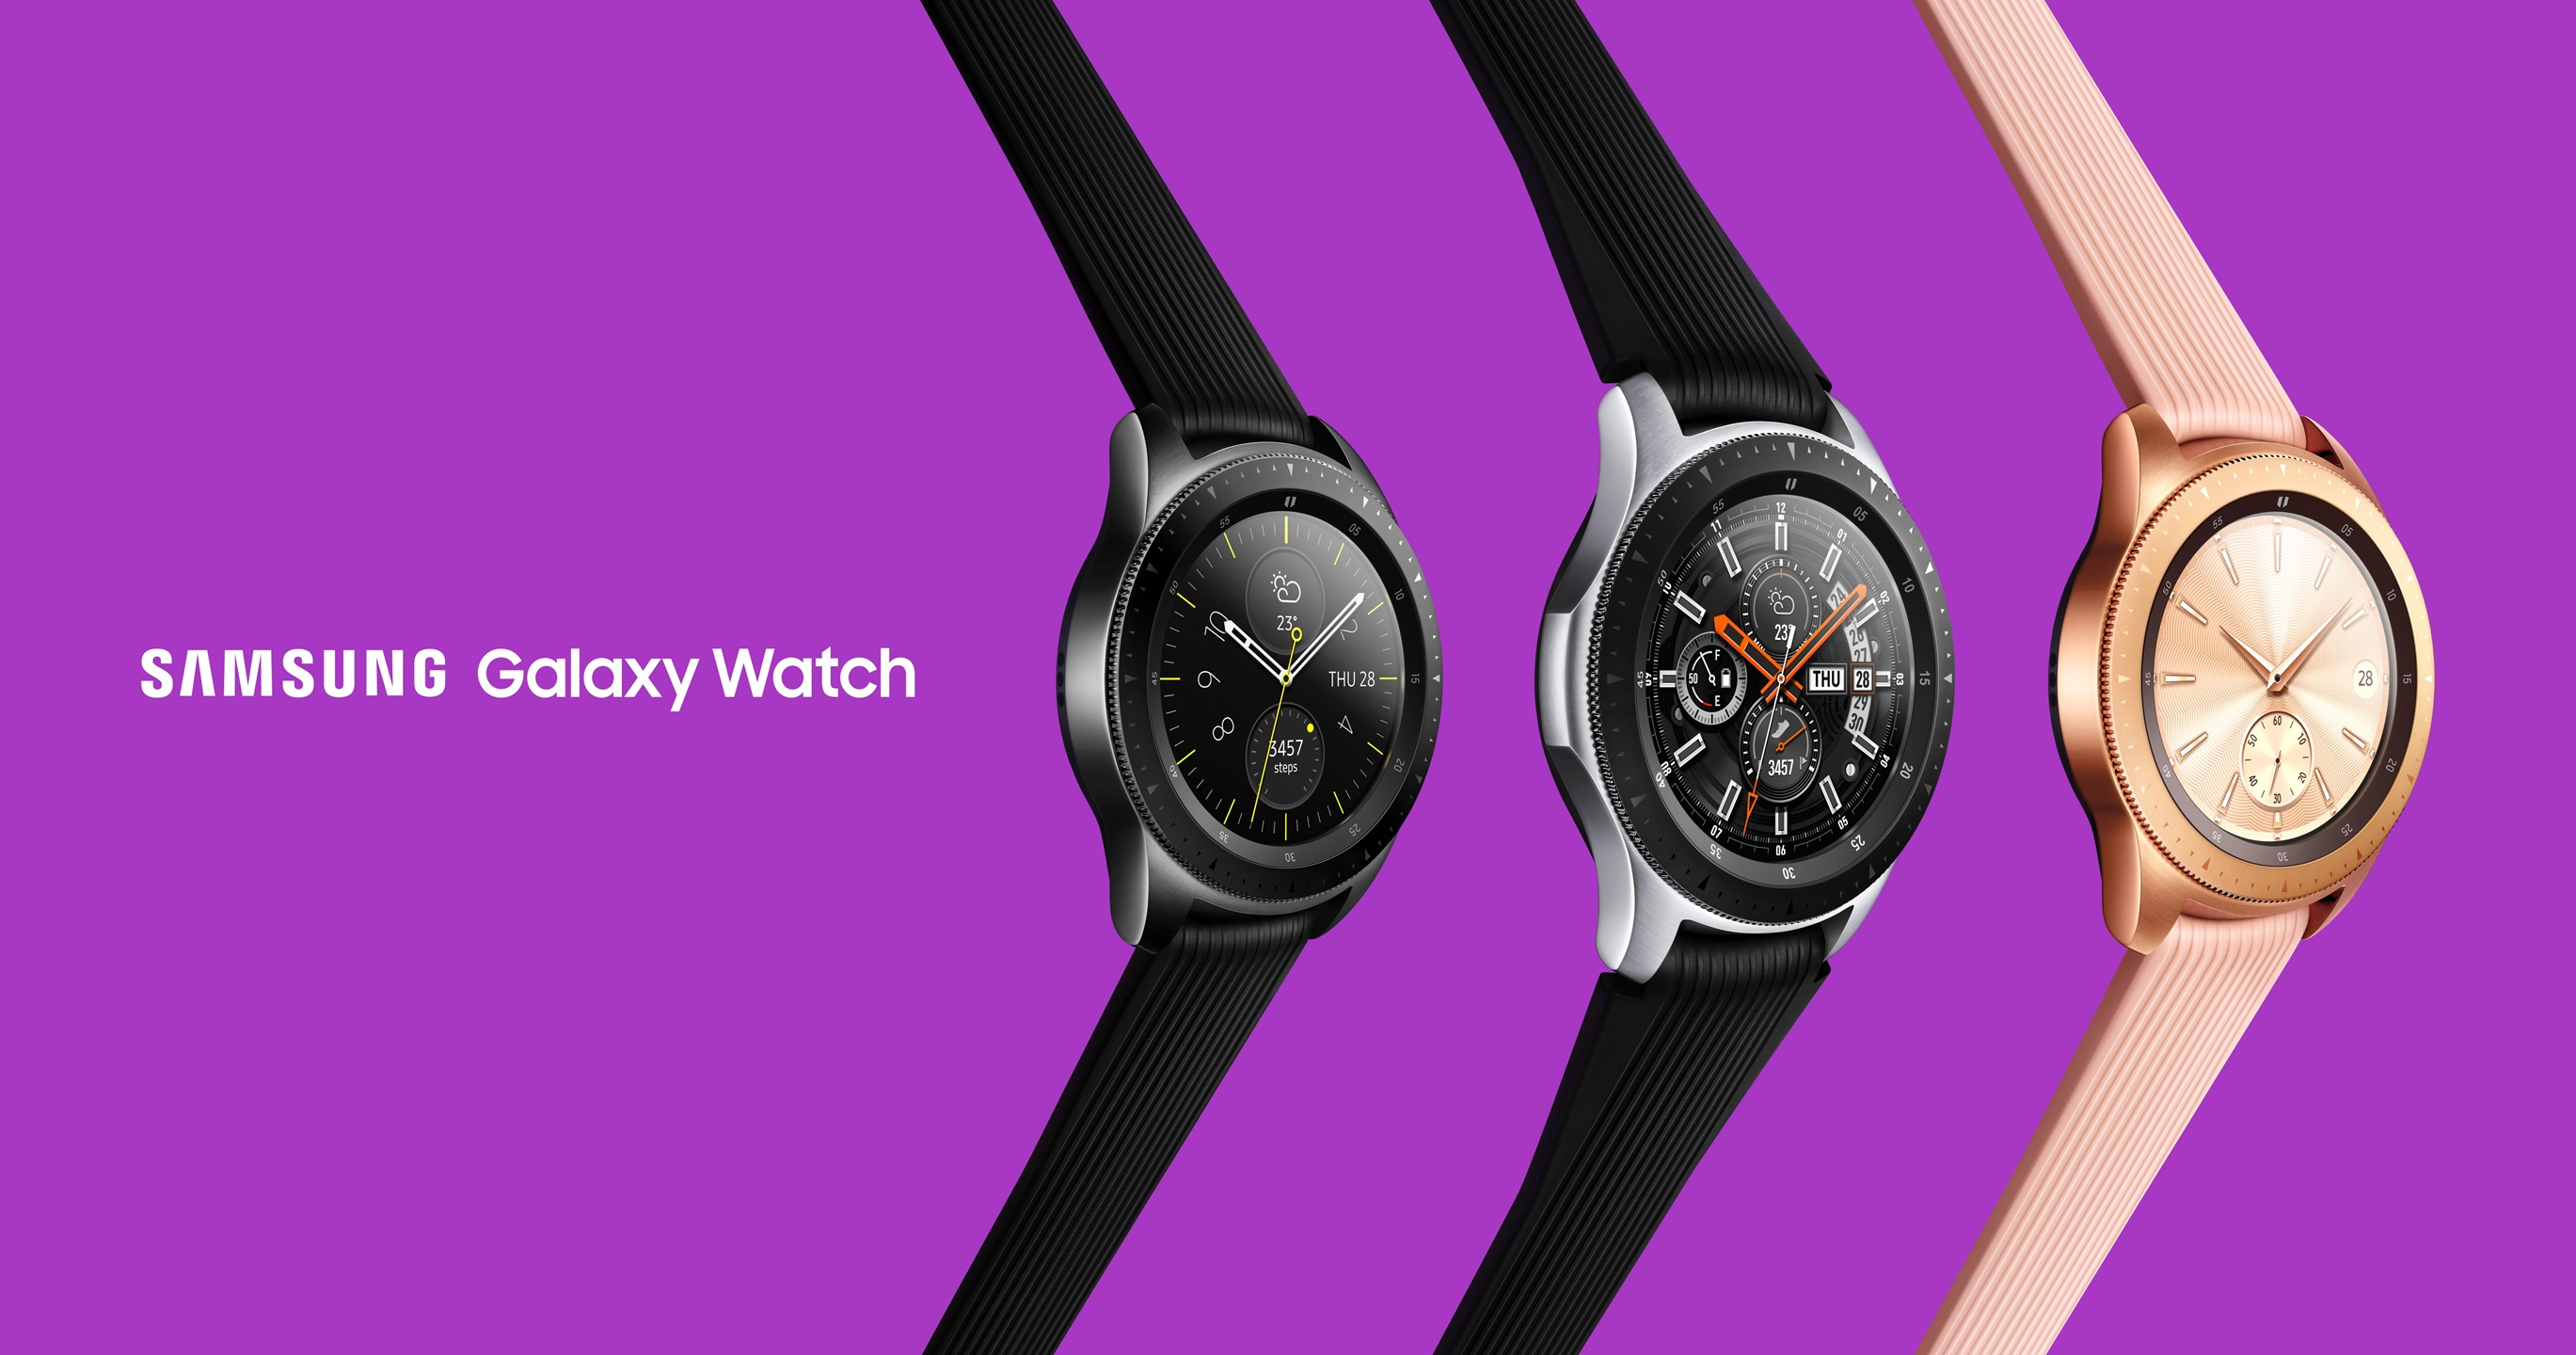 Samsung unveils its latest smartwatch — the Galaxy Watch